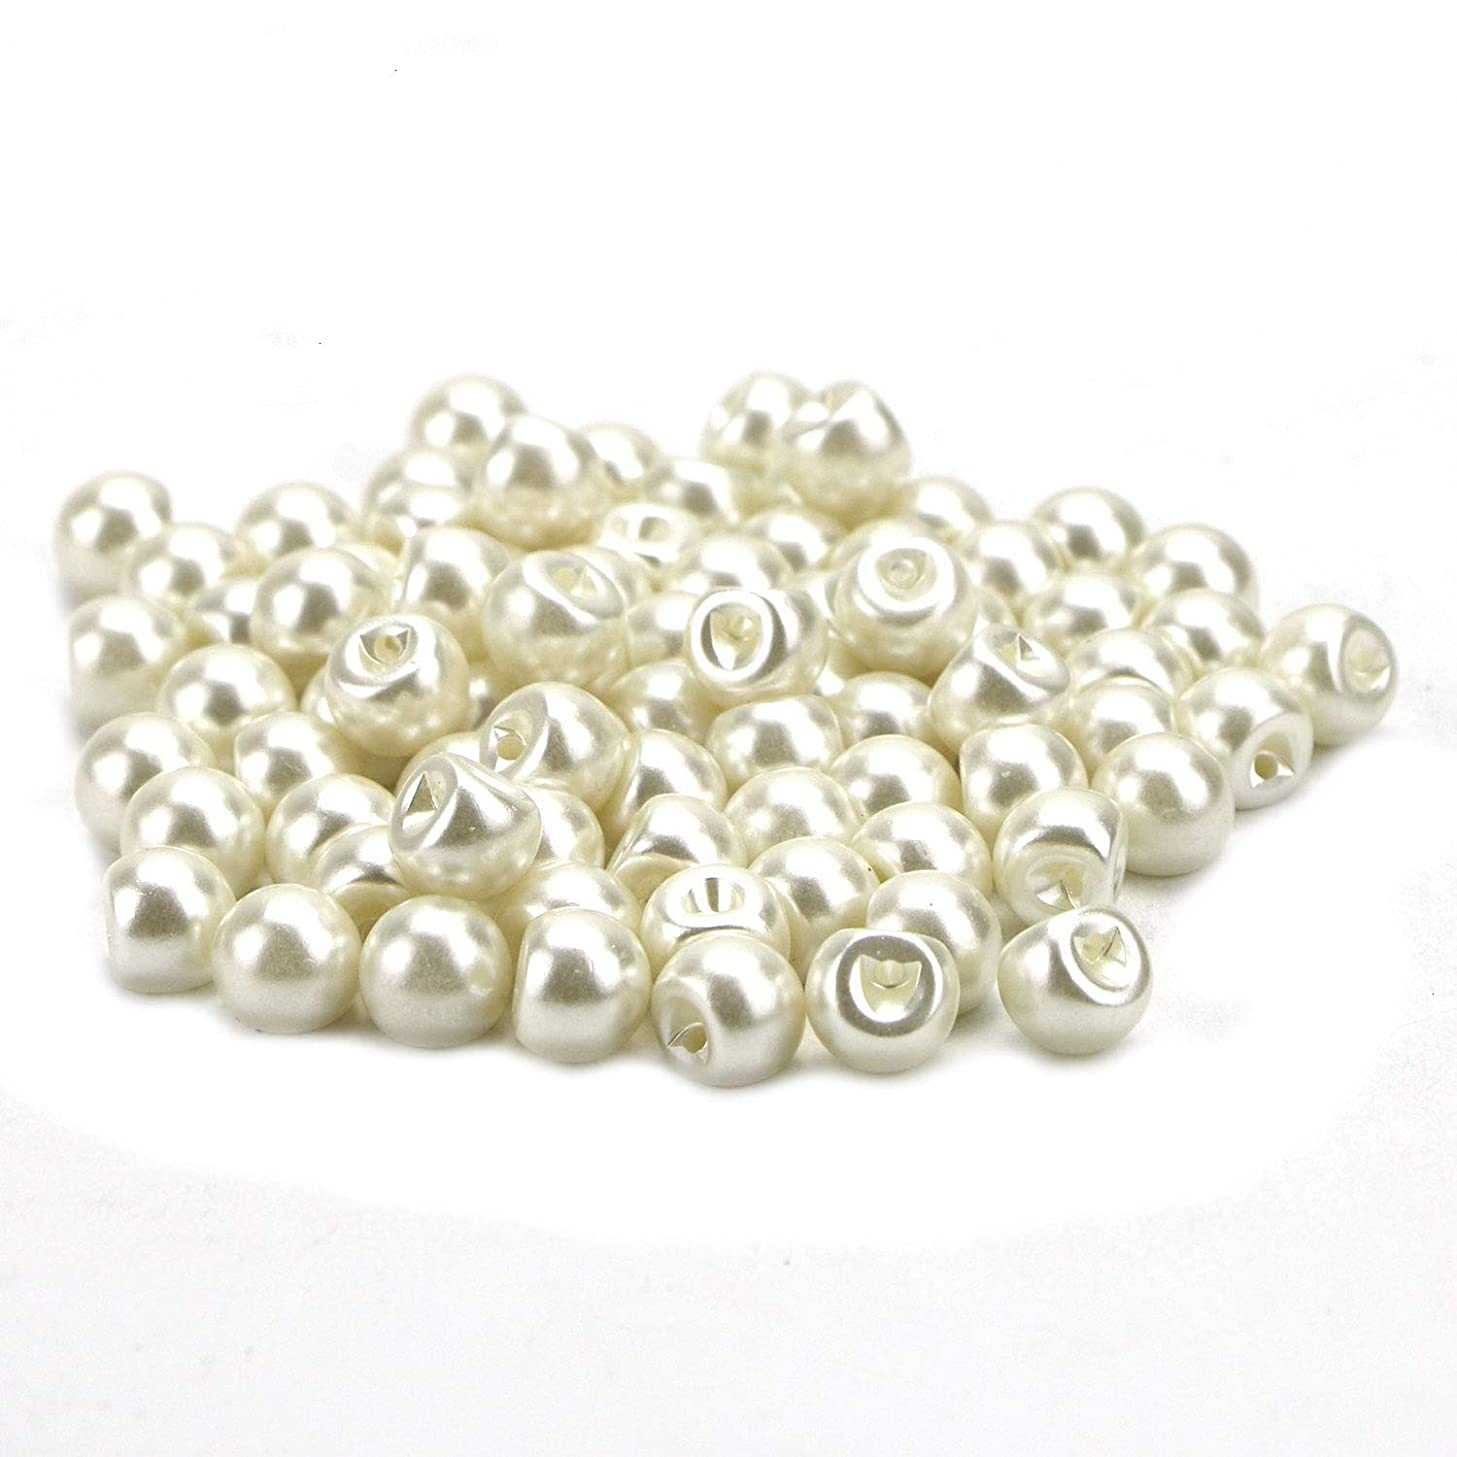 Monrocco 200pcs 10mm White Pearl Buttons Side Hole Round Sewing Buttons Pearl Buttons Pearl Bead Cap Half Ball Dome